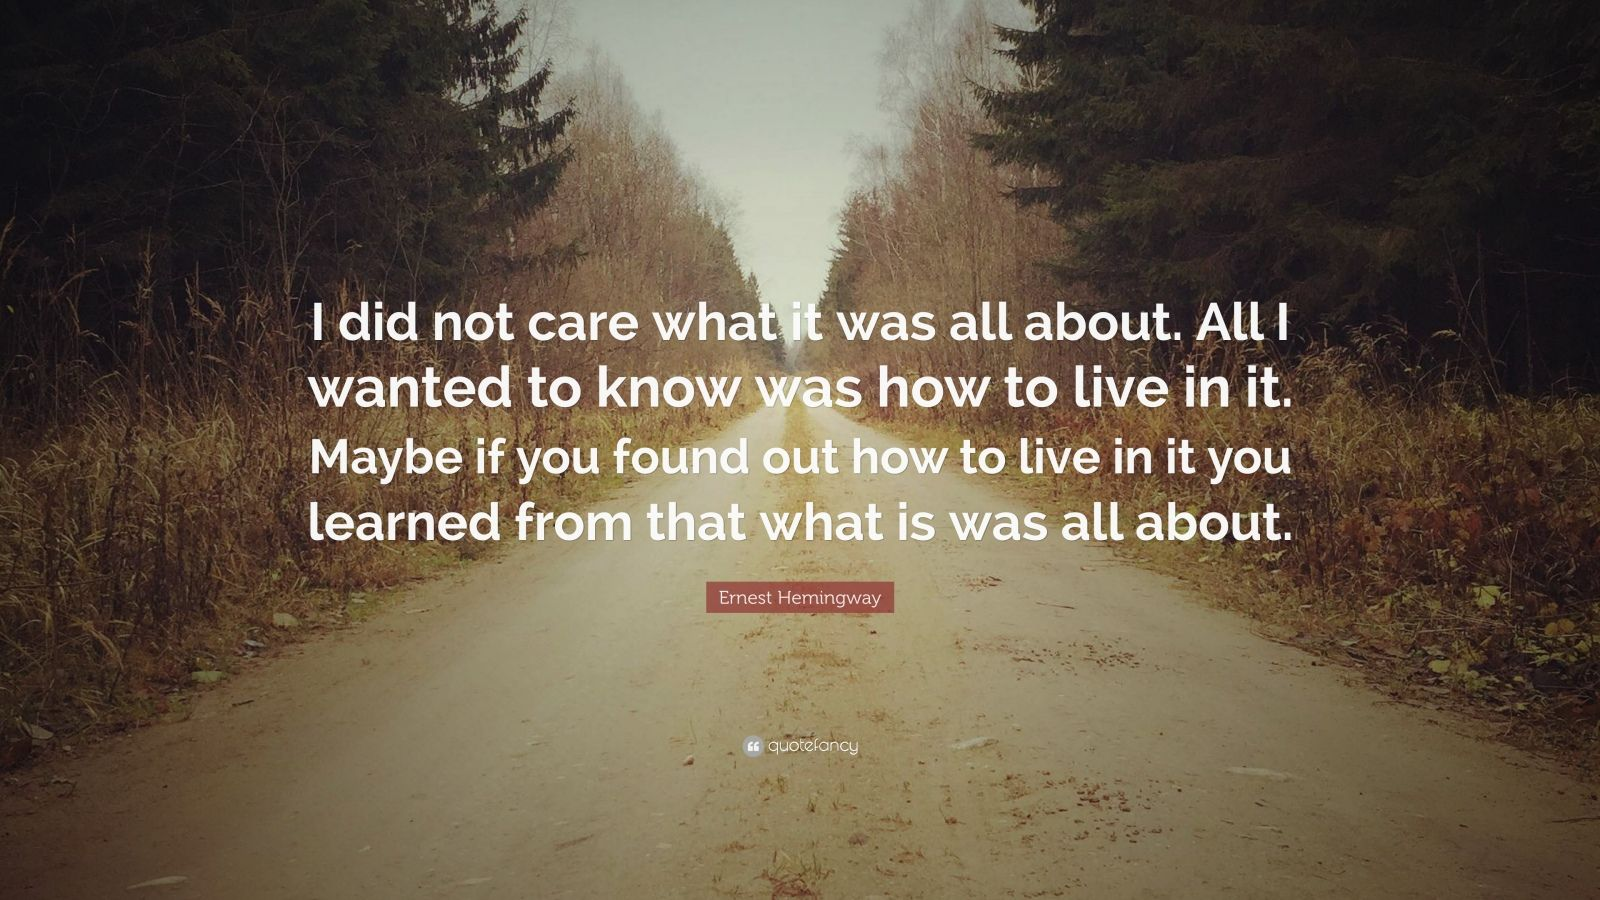 """Ernest Hemingway Quote: """"I did not care what it was all about. All I wanted to know was how to live in it. Maybe if you found out how to live in it you learned from that what is was all about."""""""